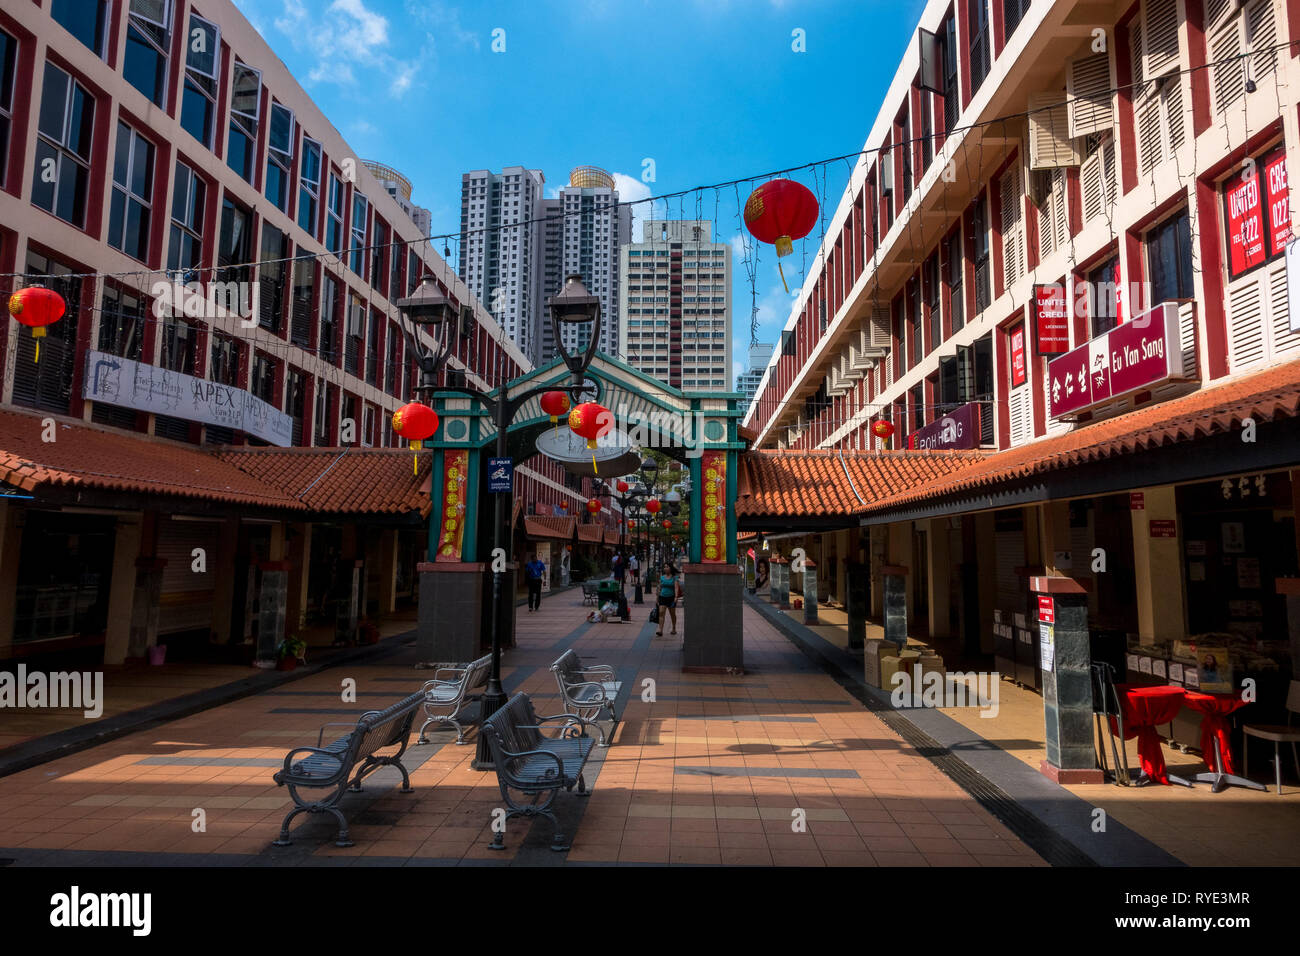 Toa Payoh Outdoor Mall Shops With Chinese New Year Lanterns - Singapore - Stock Image